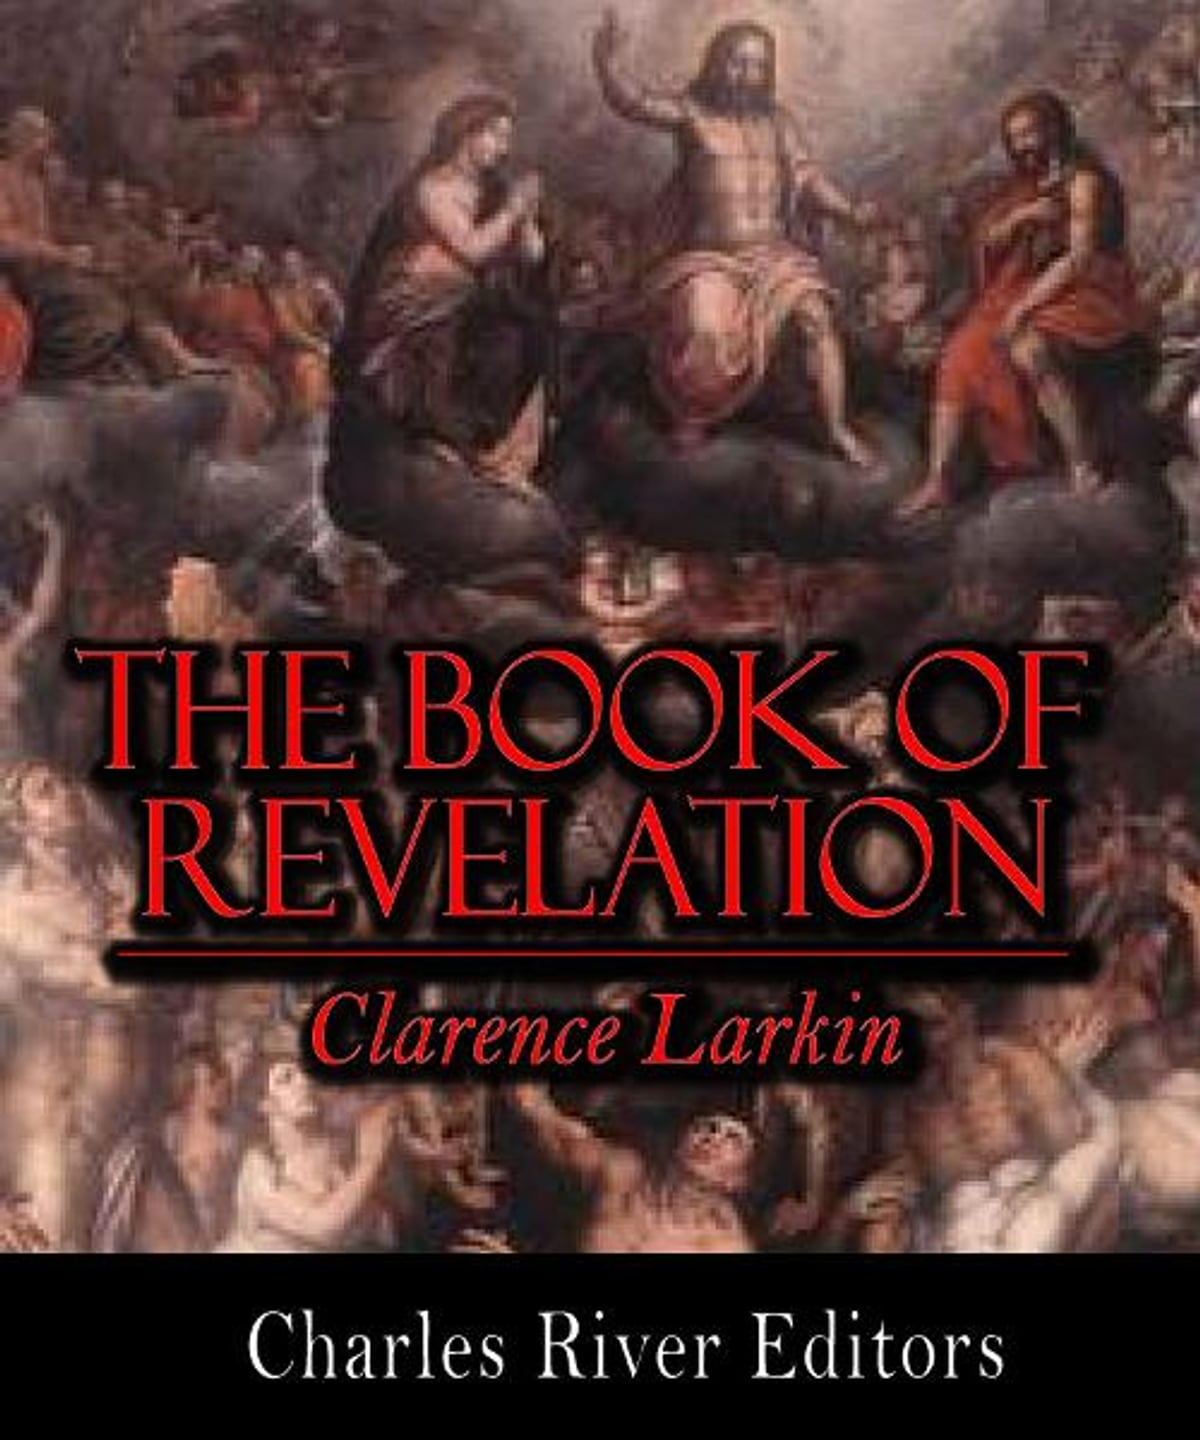 The Book of Revelation